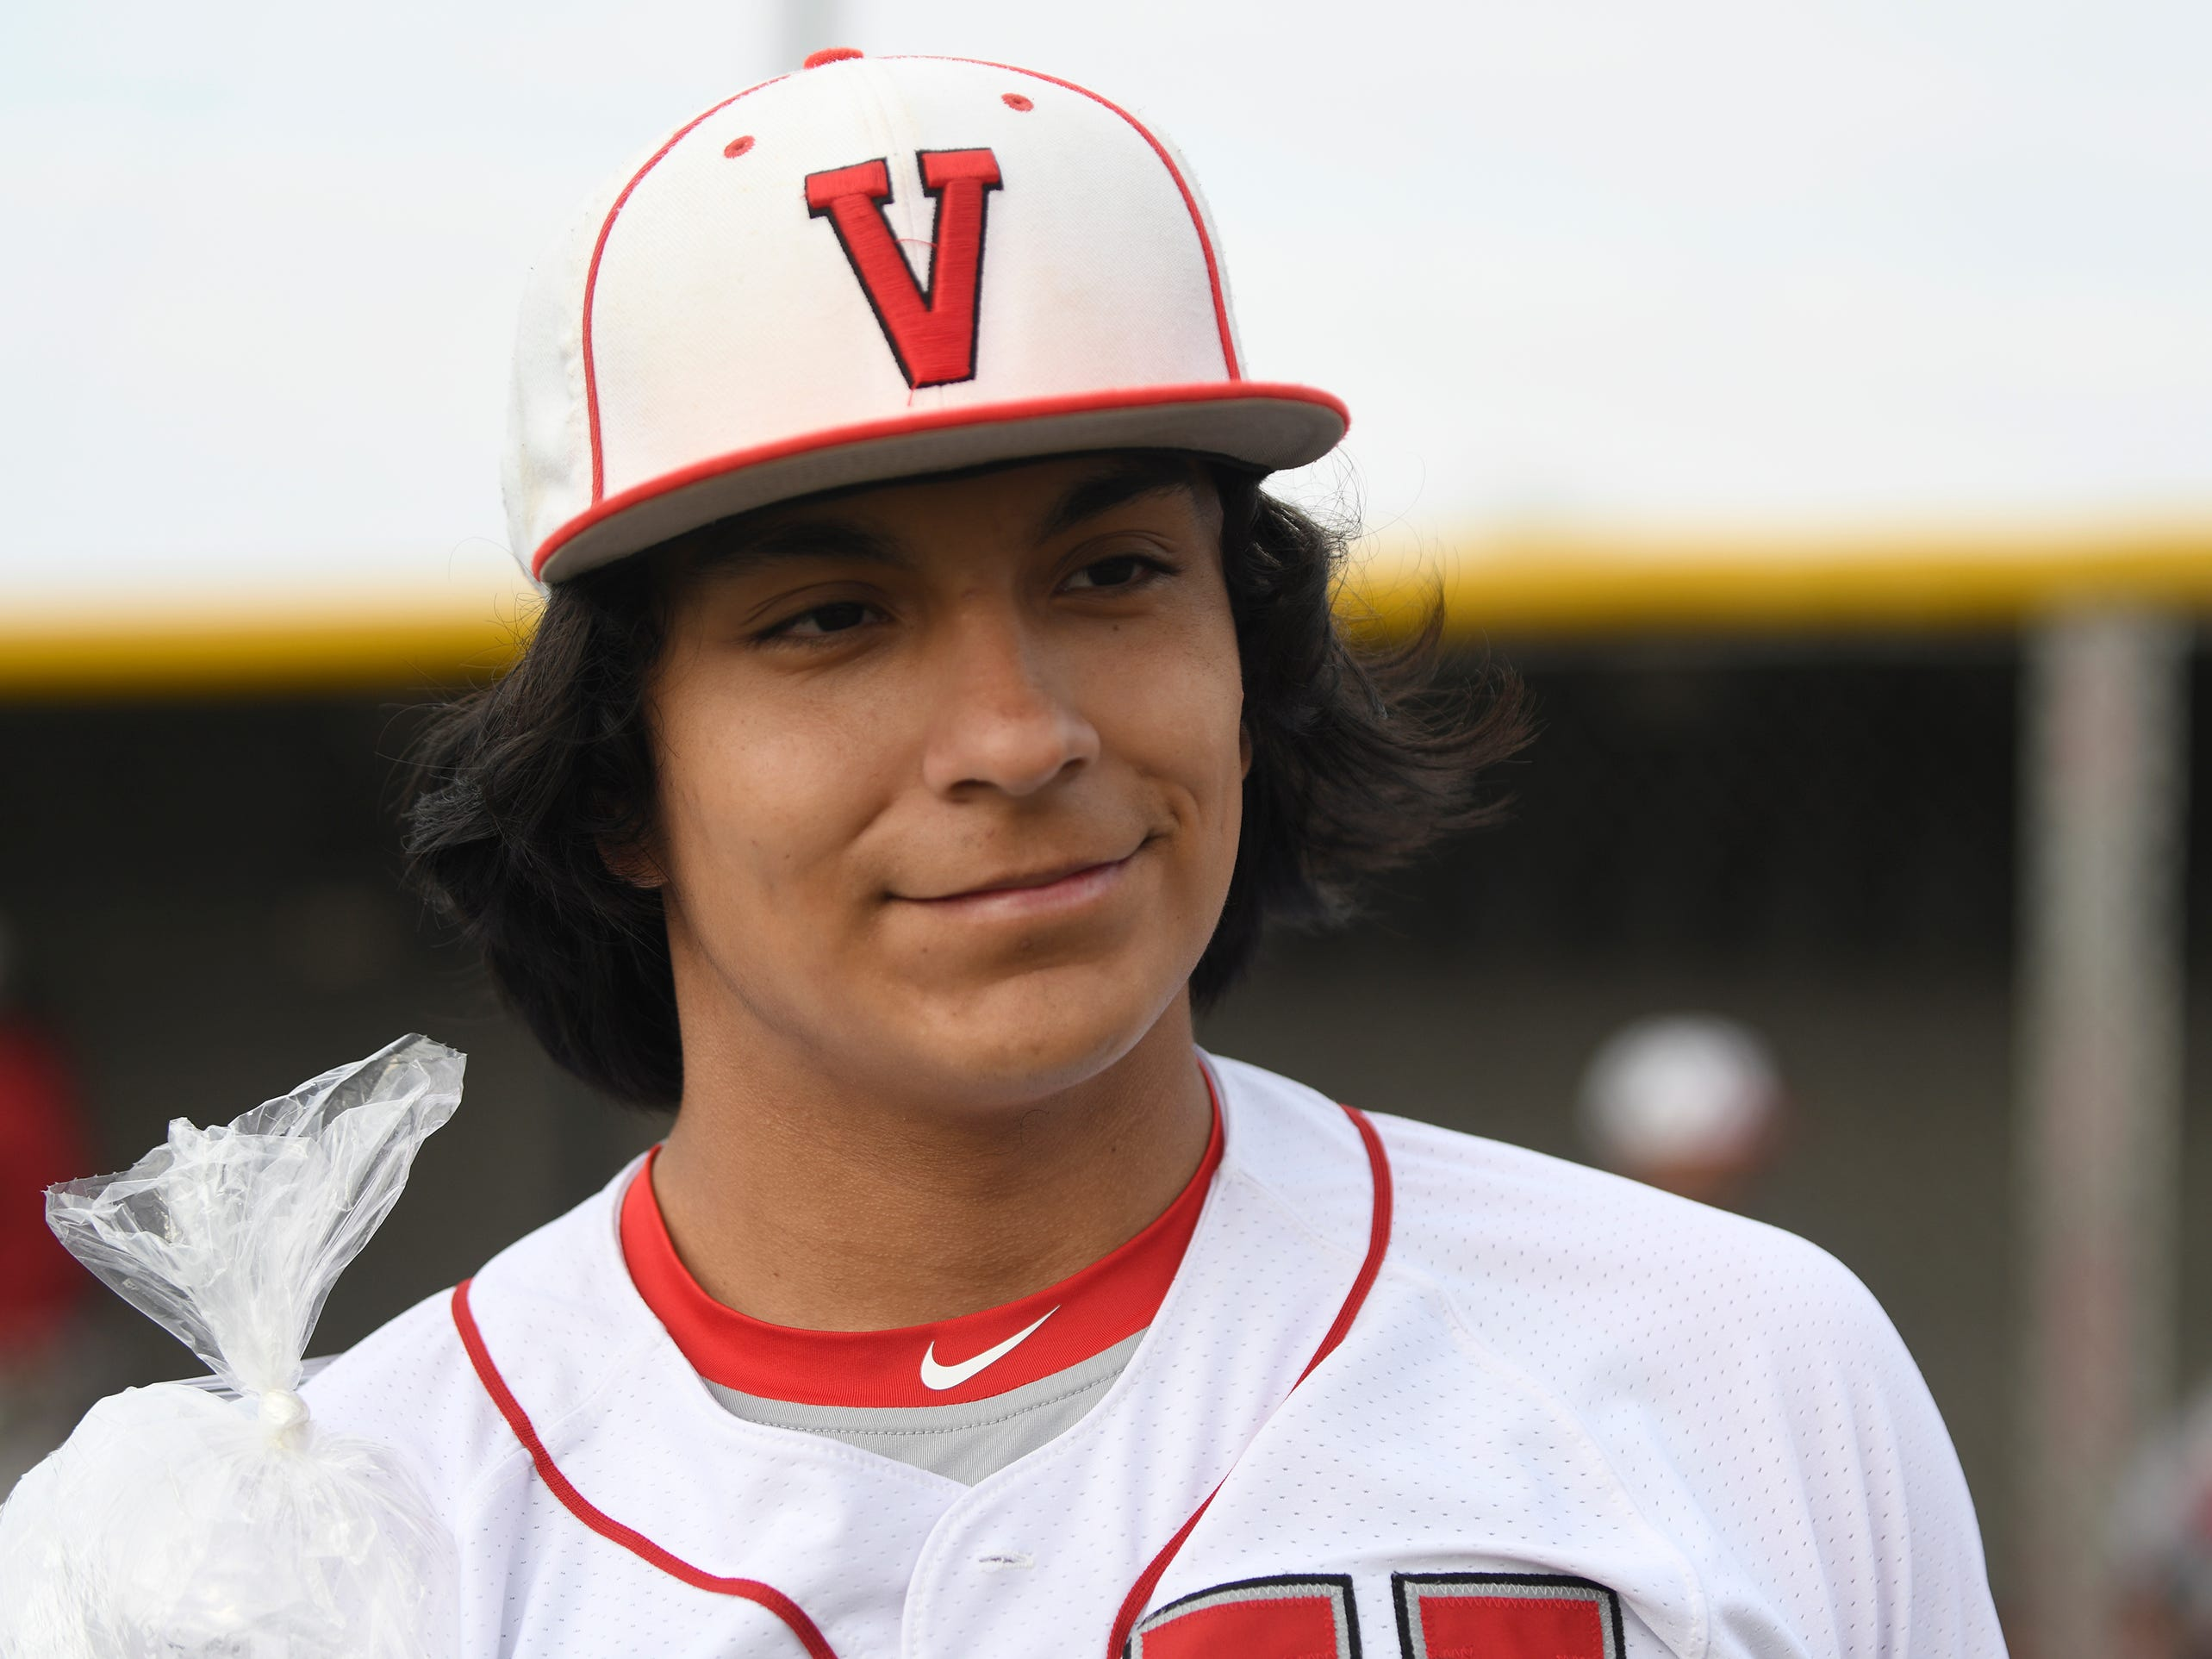 Vineland's Andrew Simone pitched the entire game against Atlantic City on Wednesday. The Fighting Clan topped the Vikings 12-2.